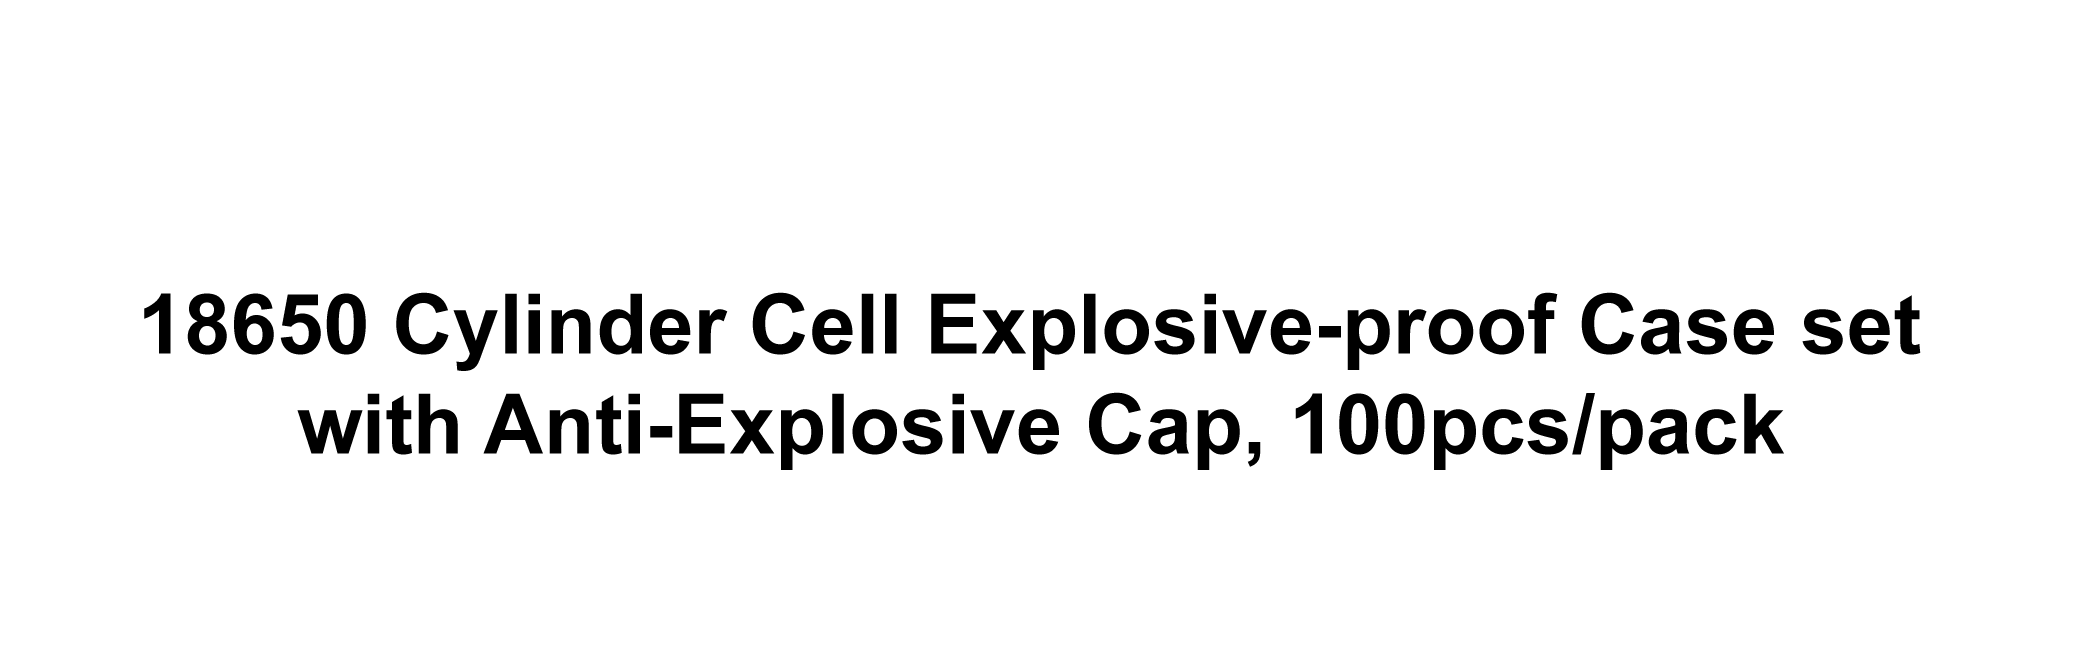 18650 Cylinder Cell Explosive-proof Case set with Anti-Explosive Cap, 100pcs/pack